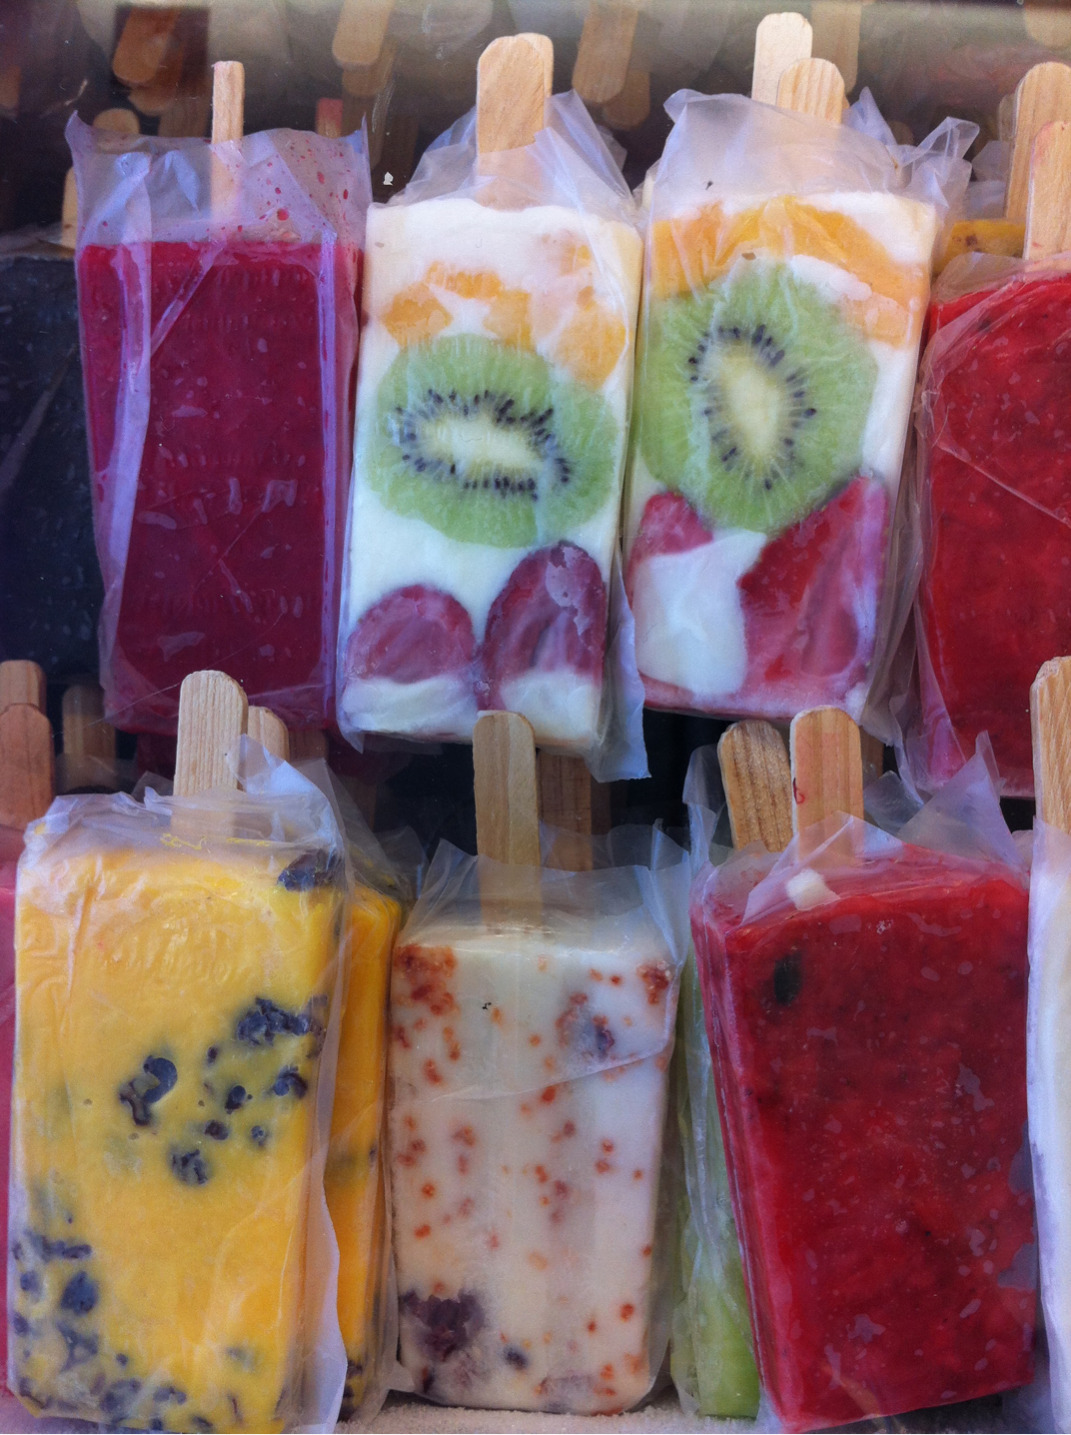 bumblebee907:  fit-at-heart:  Totally making my own popsicles this summer!  Heck yeah